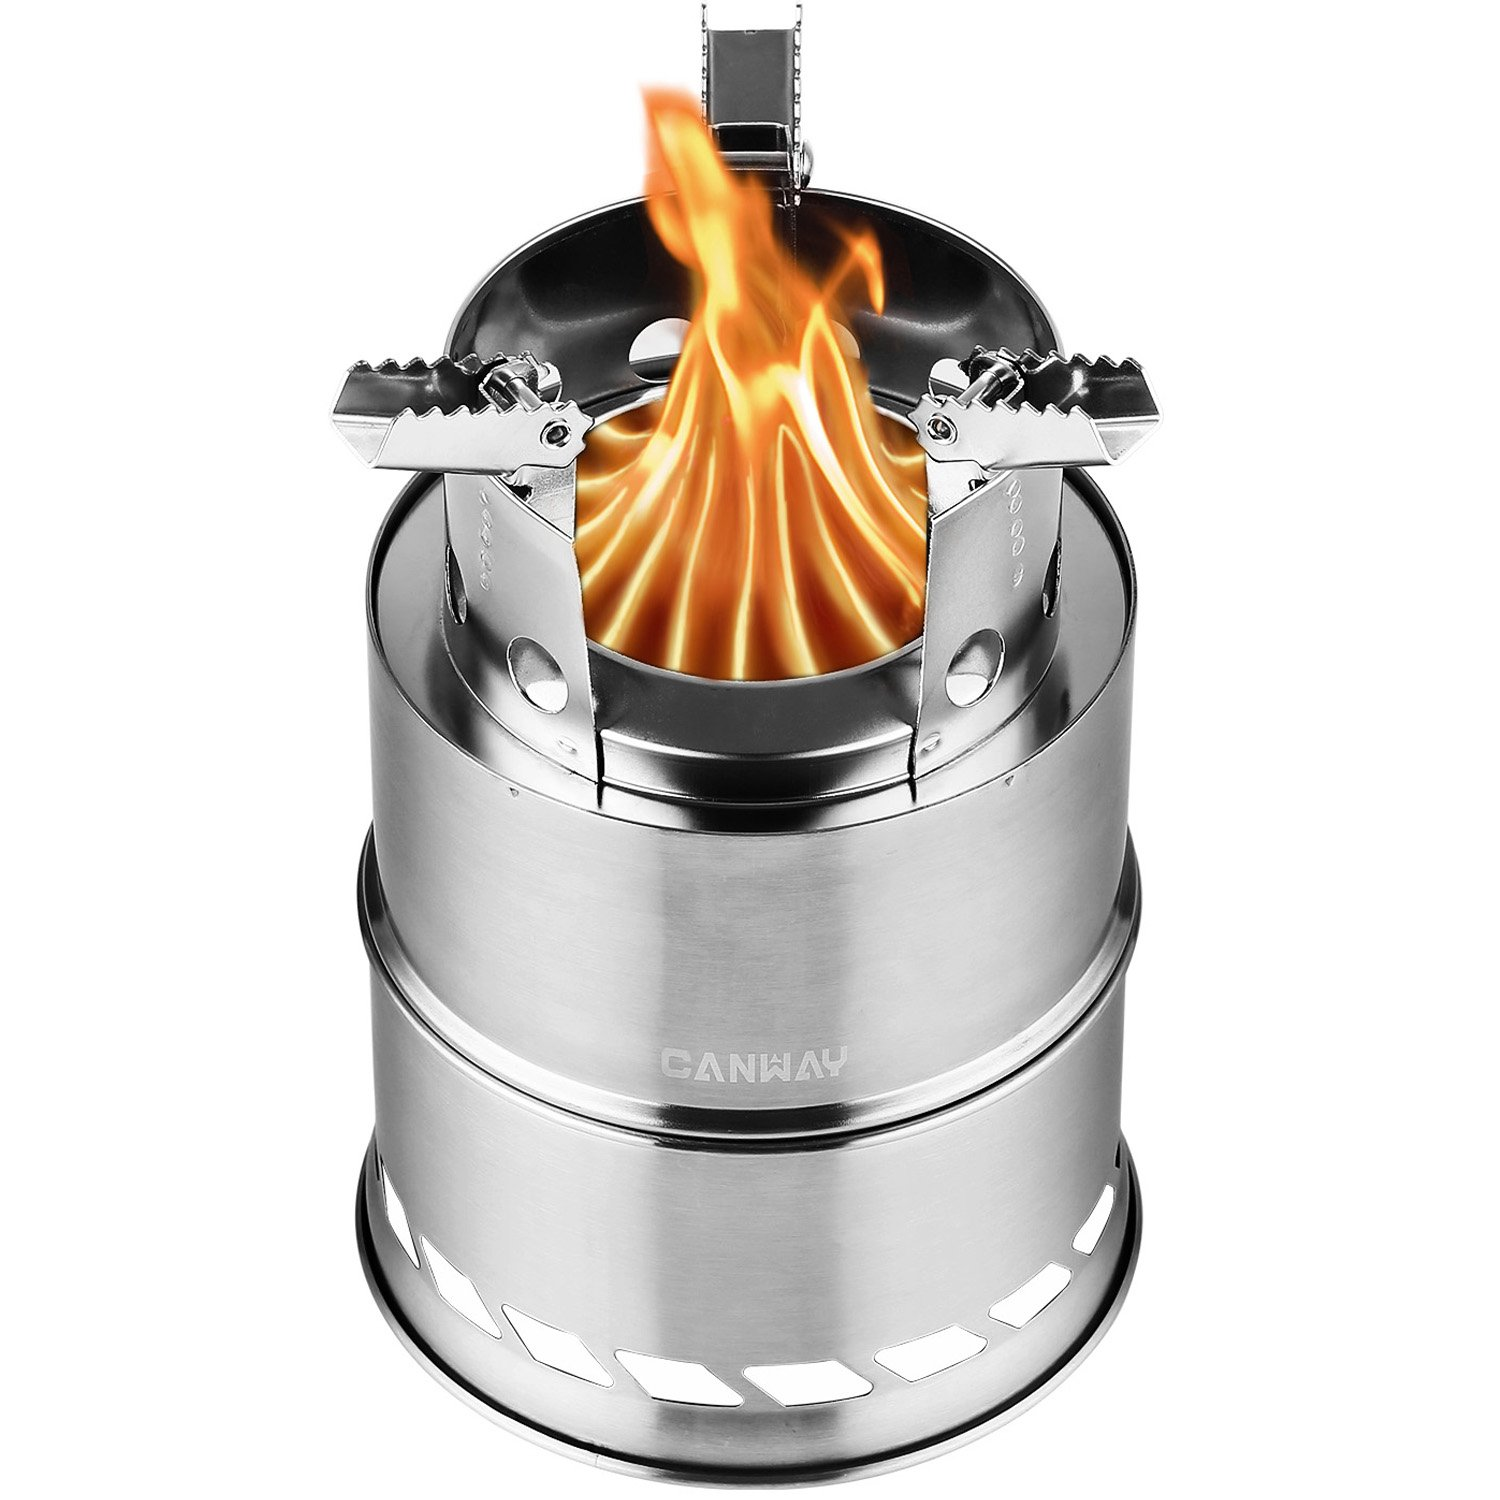 Canway Camping Stove, Wood Stove Backpacking Stove,Portable Stainless Steel Wood Burning Stove Nylon Carry Bag Outdoor Backpacking Hiking Traveling Picnic BBQ